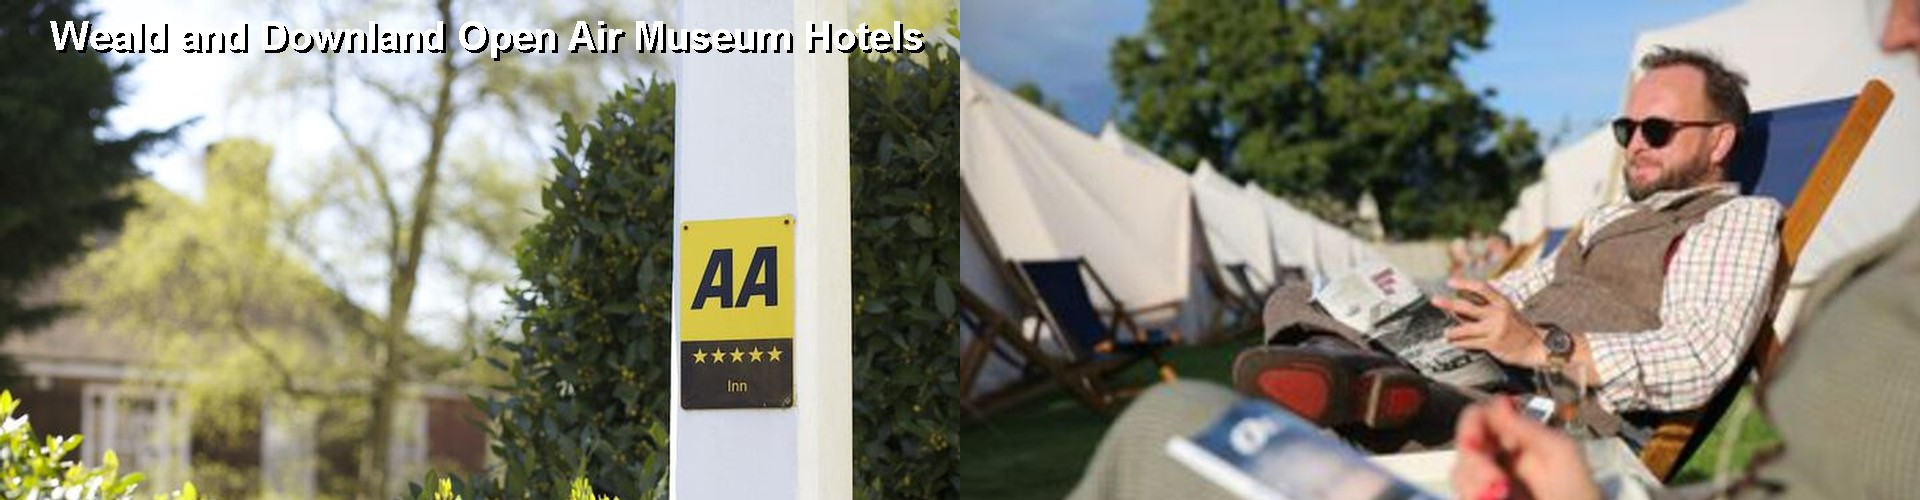 4 Best Hotels near Weald and Downland Open Air Museum